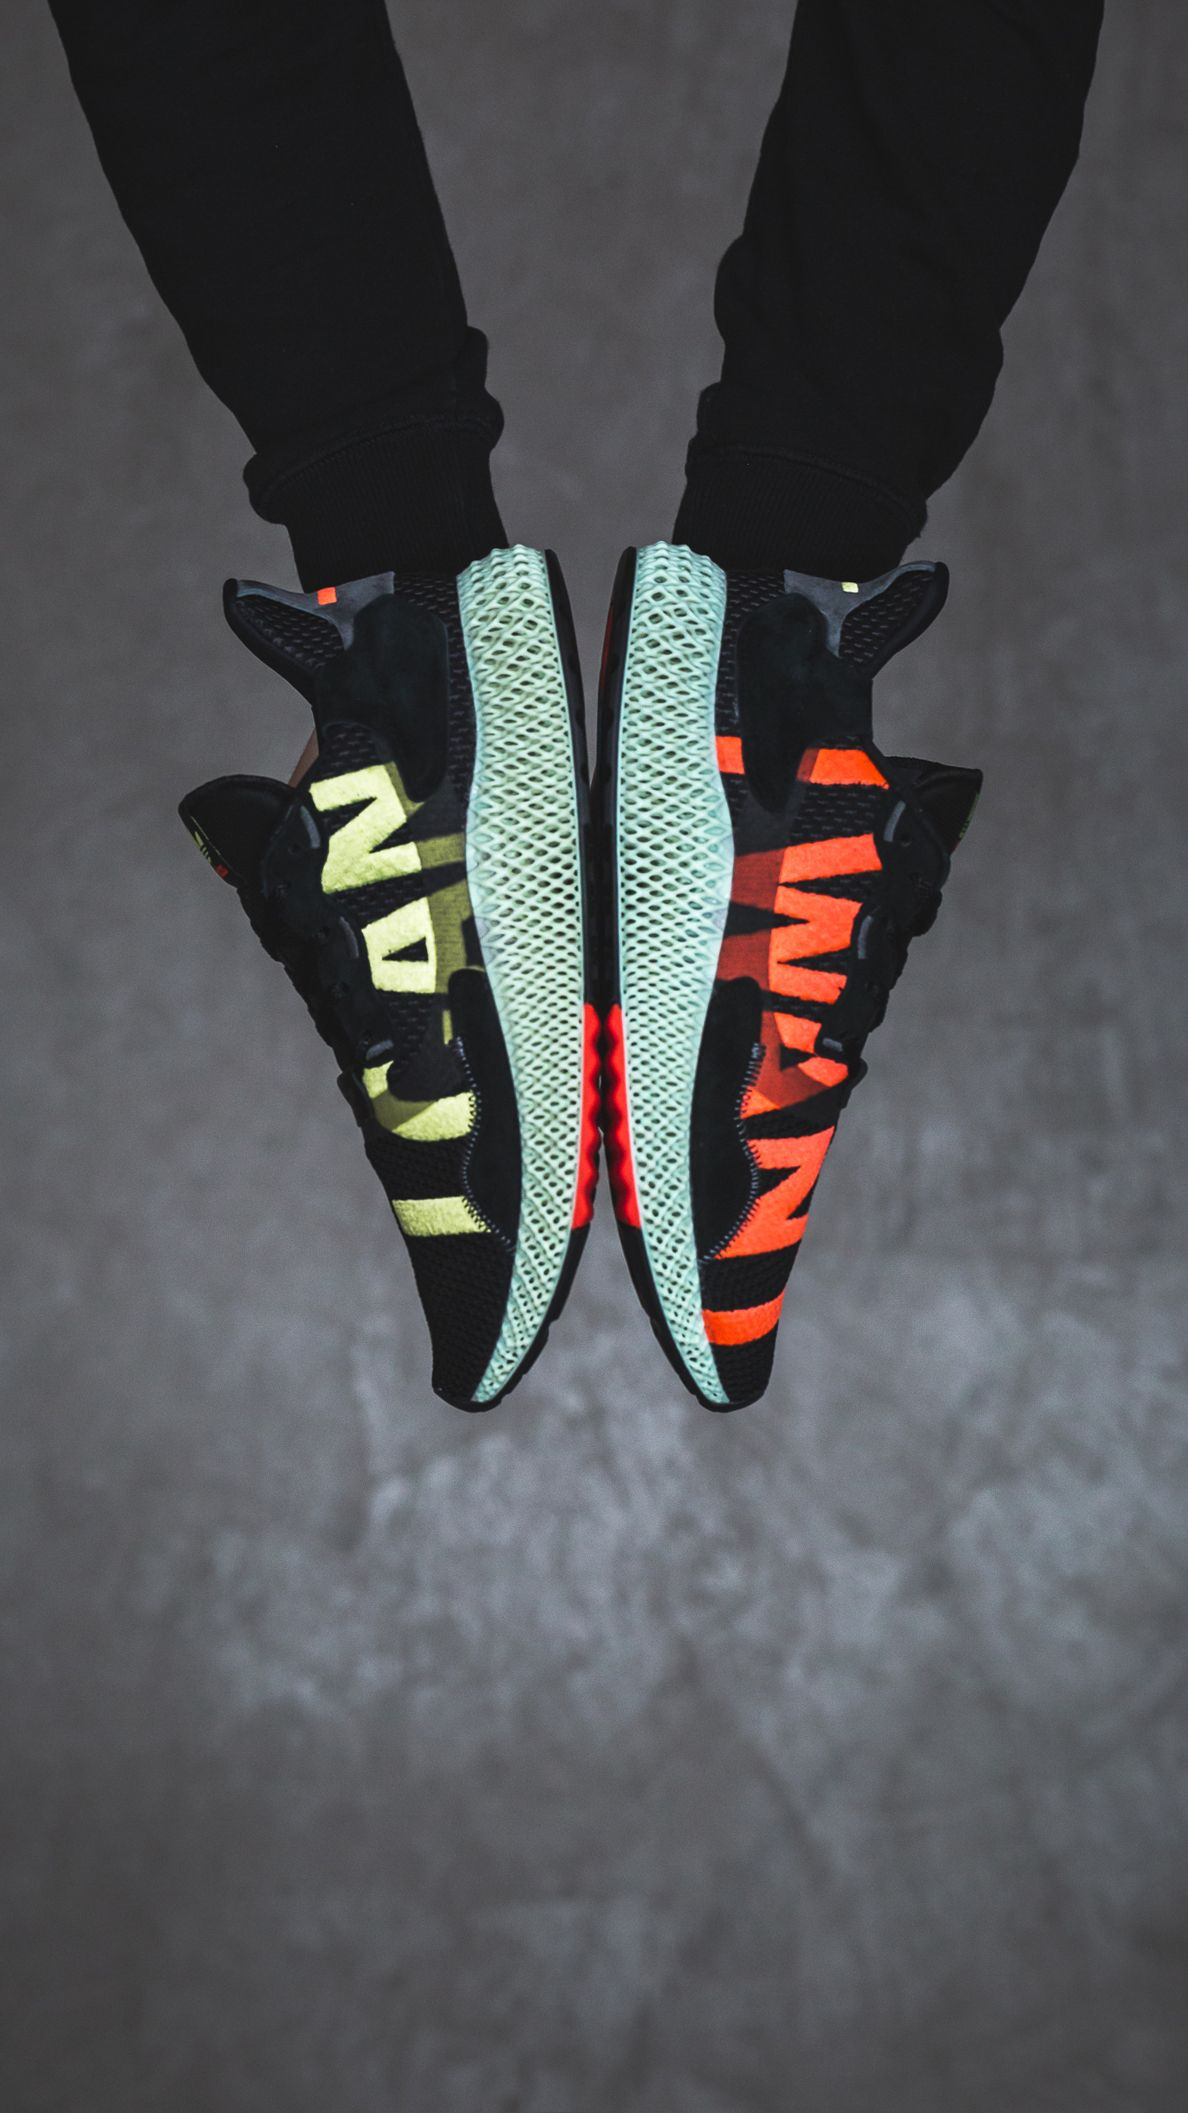 Adidas Zx 4000 4d I Want I Can Adidas Zx Sneakers Fashion Sneaker Stores